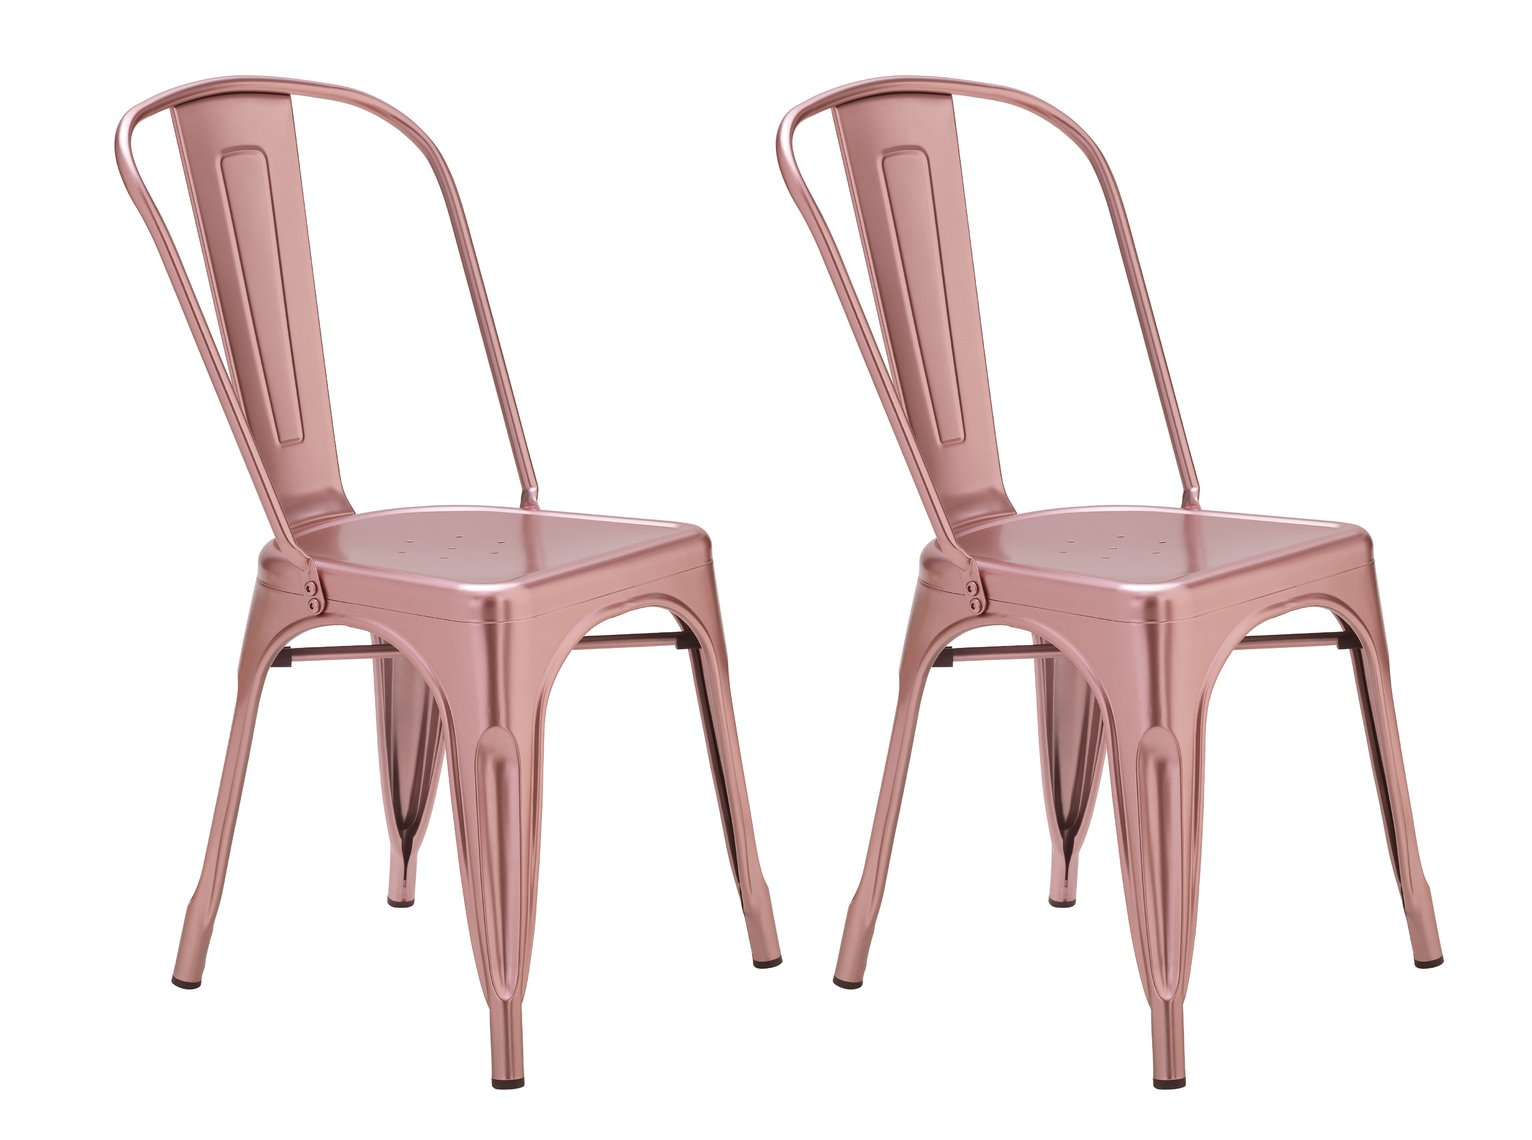 172 & Buy Argos Home Industrial Pair of Metal Dining Chairs - Pink | Dining chairs | Argos